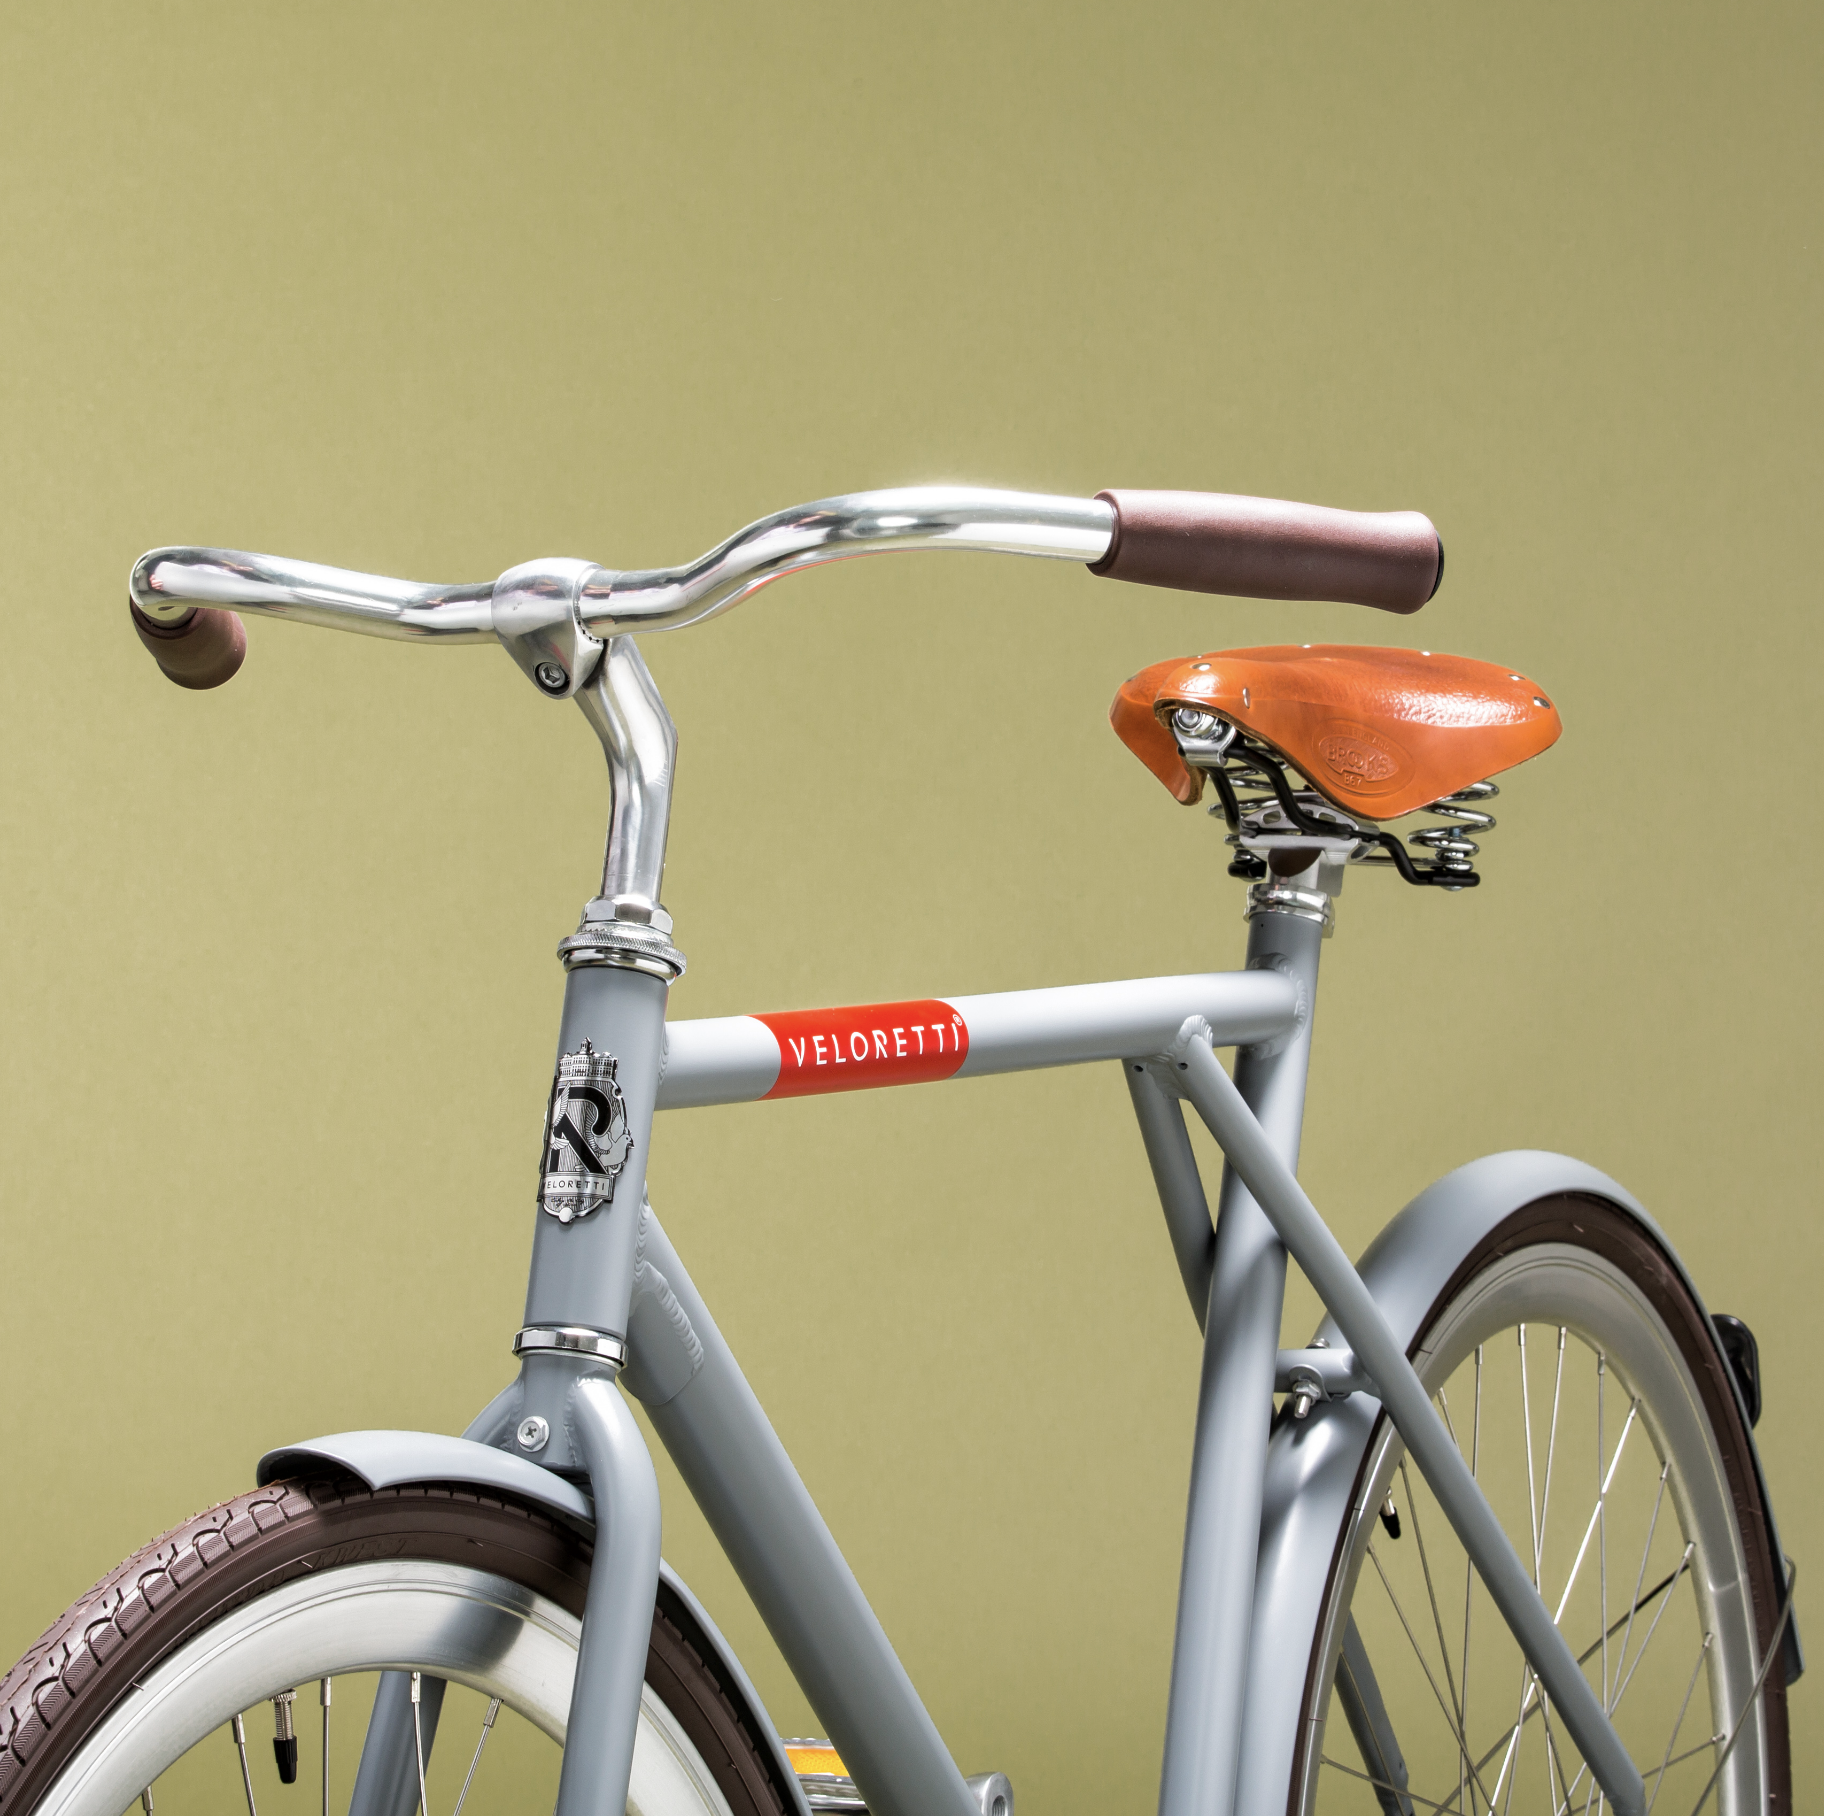 veloretti-bycicle-designhunger.png